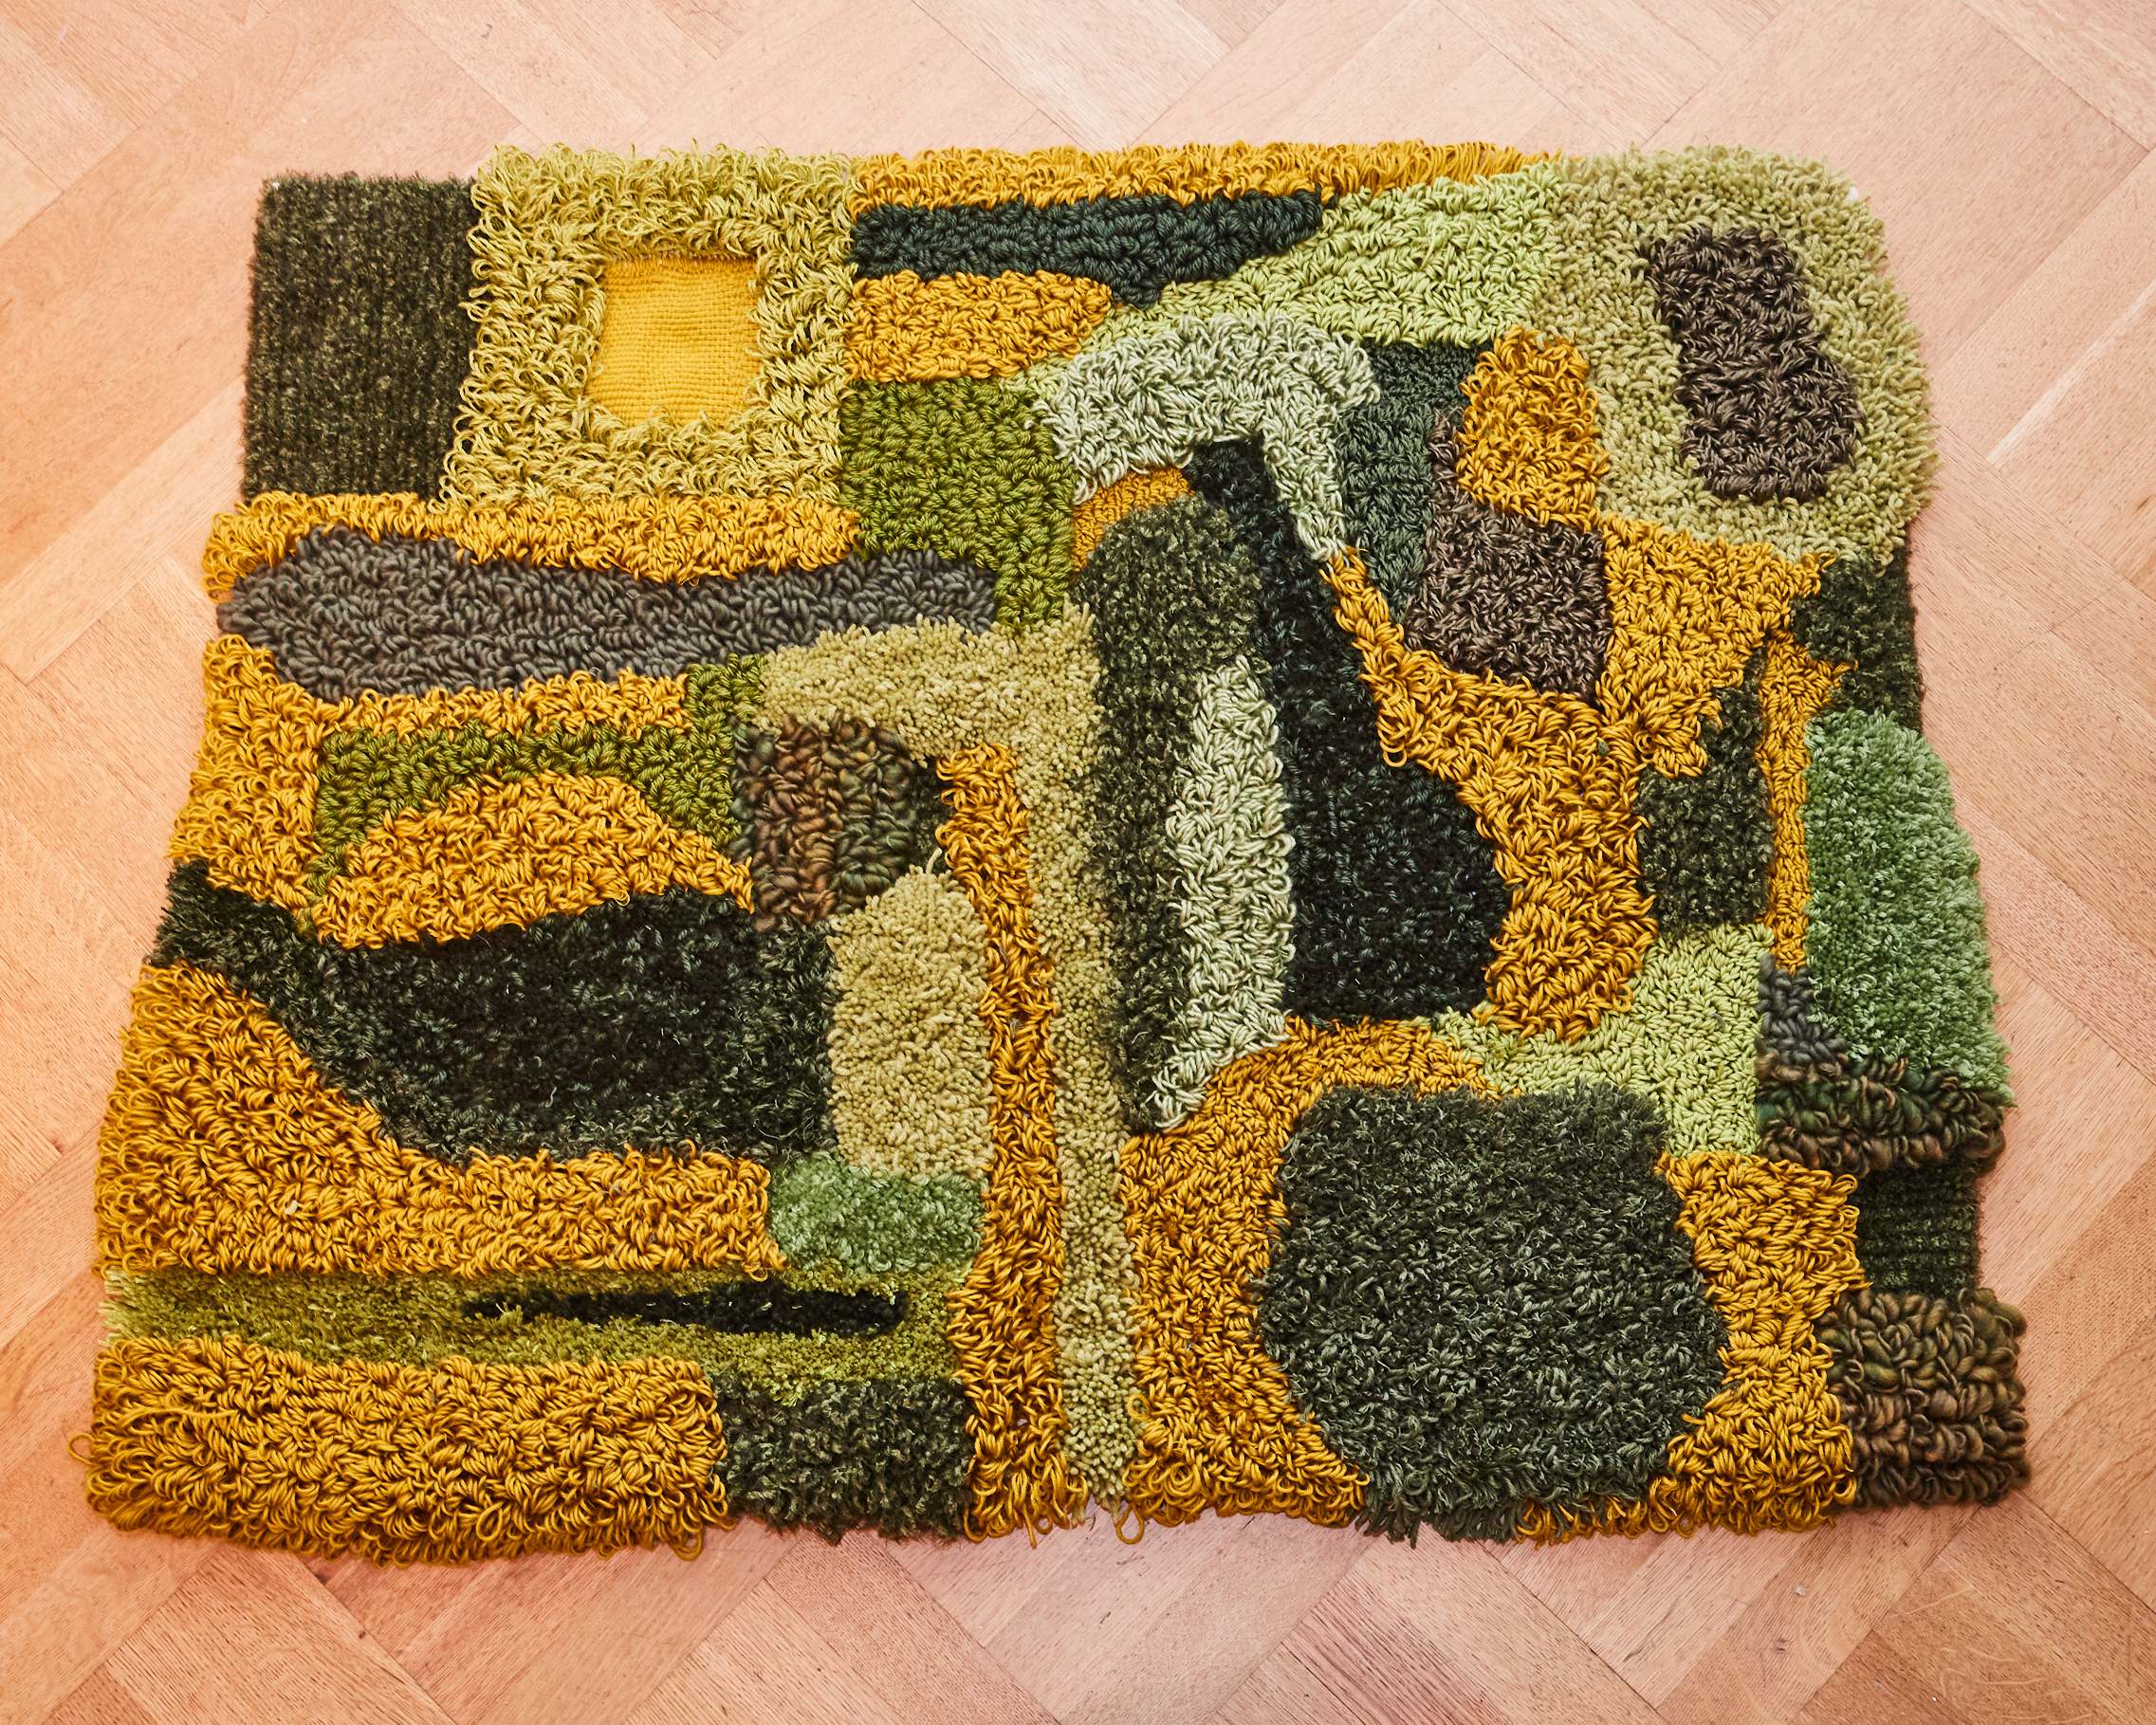 The rug on the floor. The colors are intensified due to the high light exposure. There are many different texture made from different types of yarns, tufting heights, and loop structures.